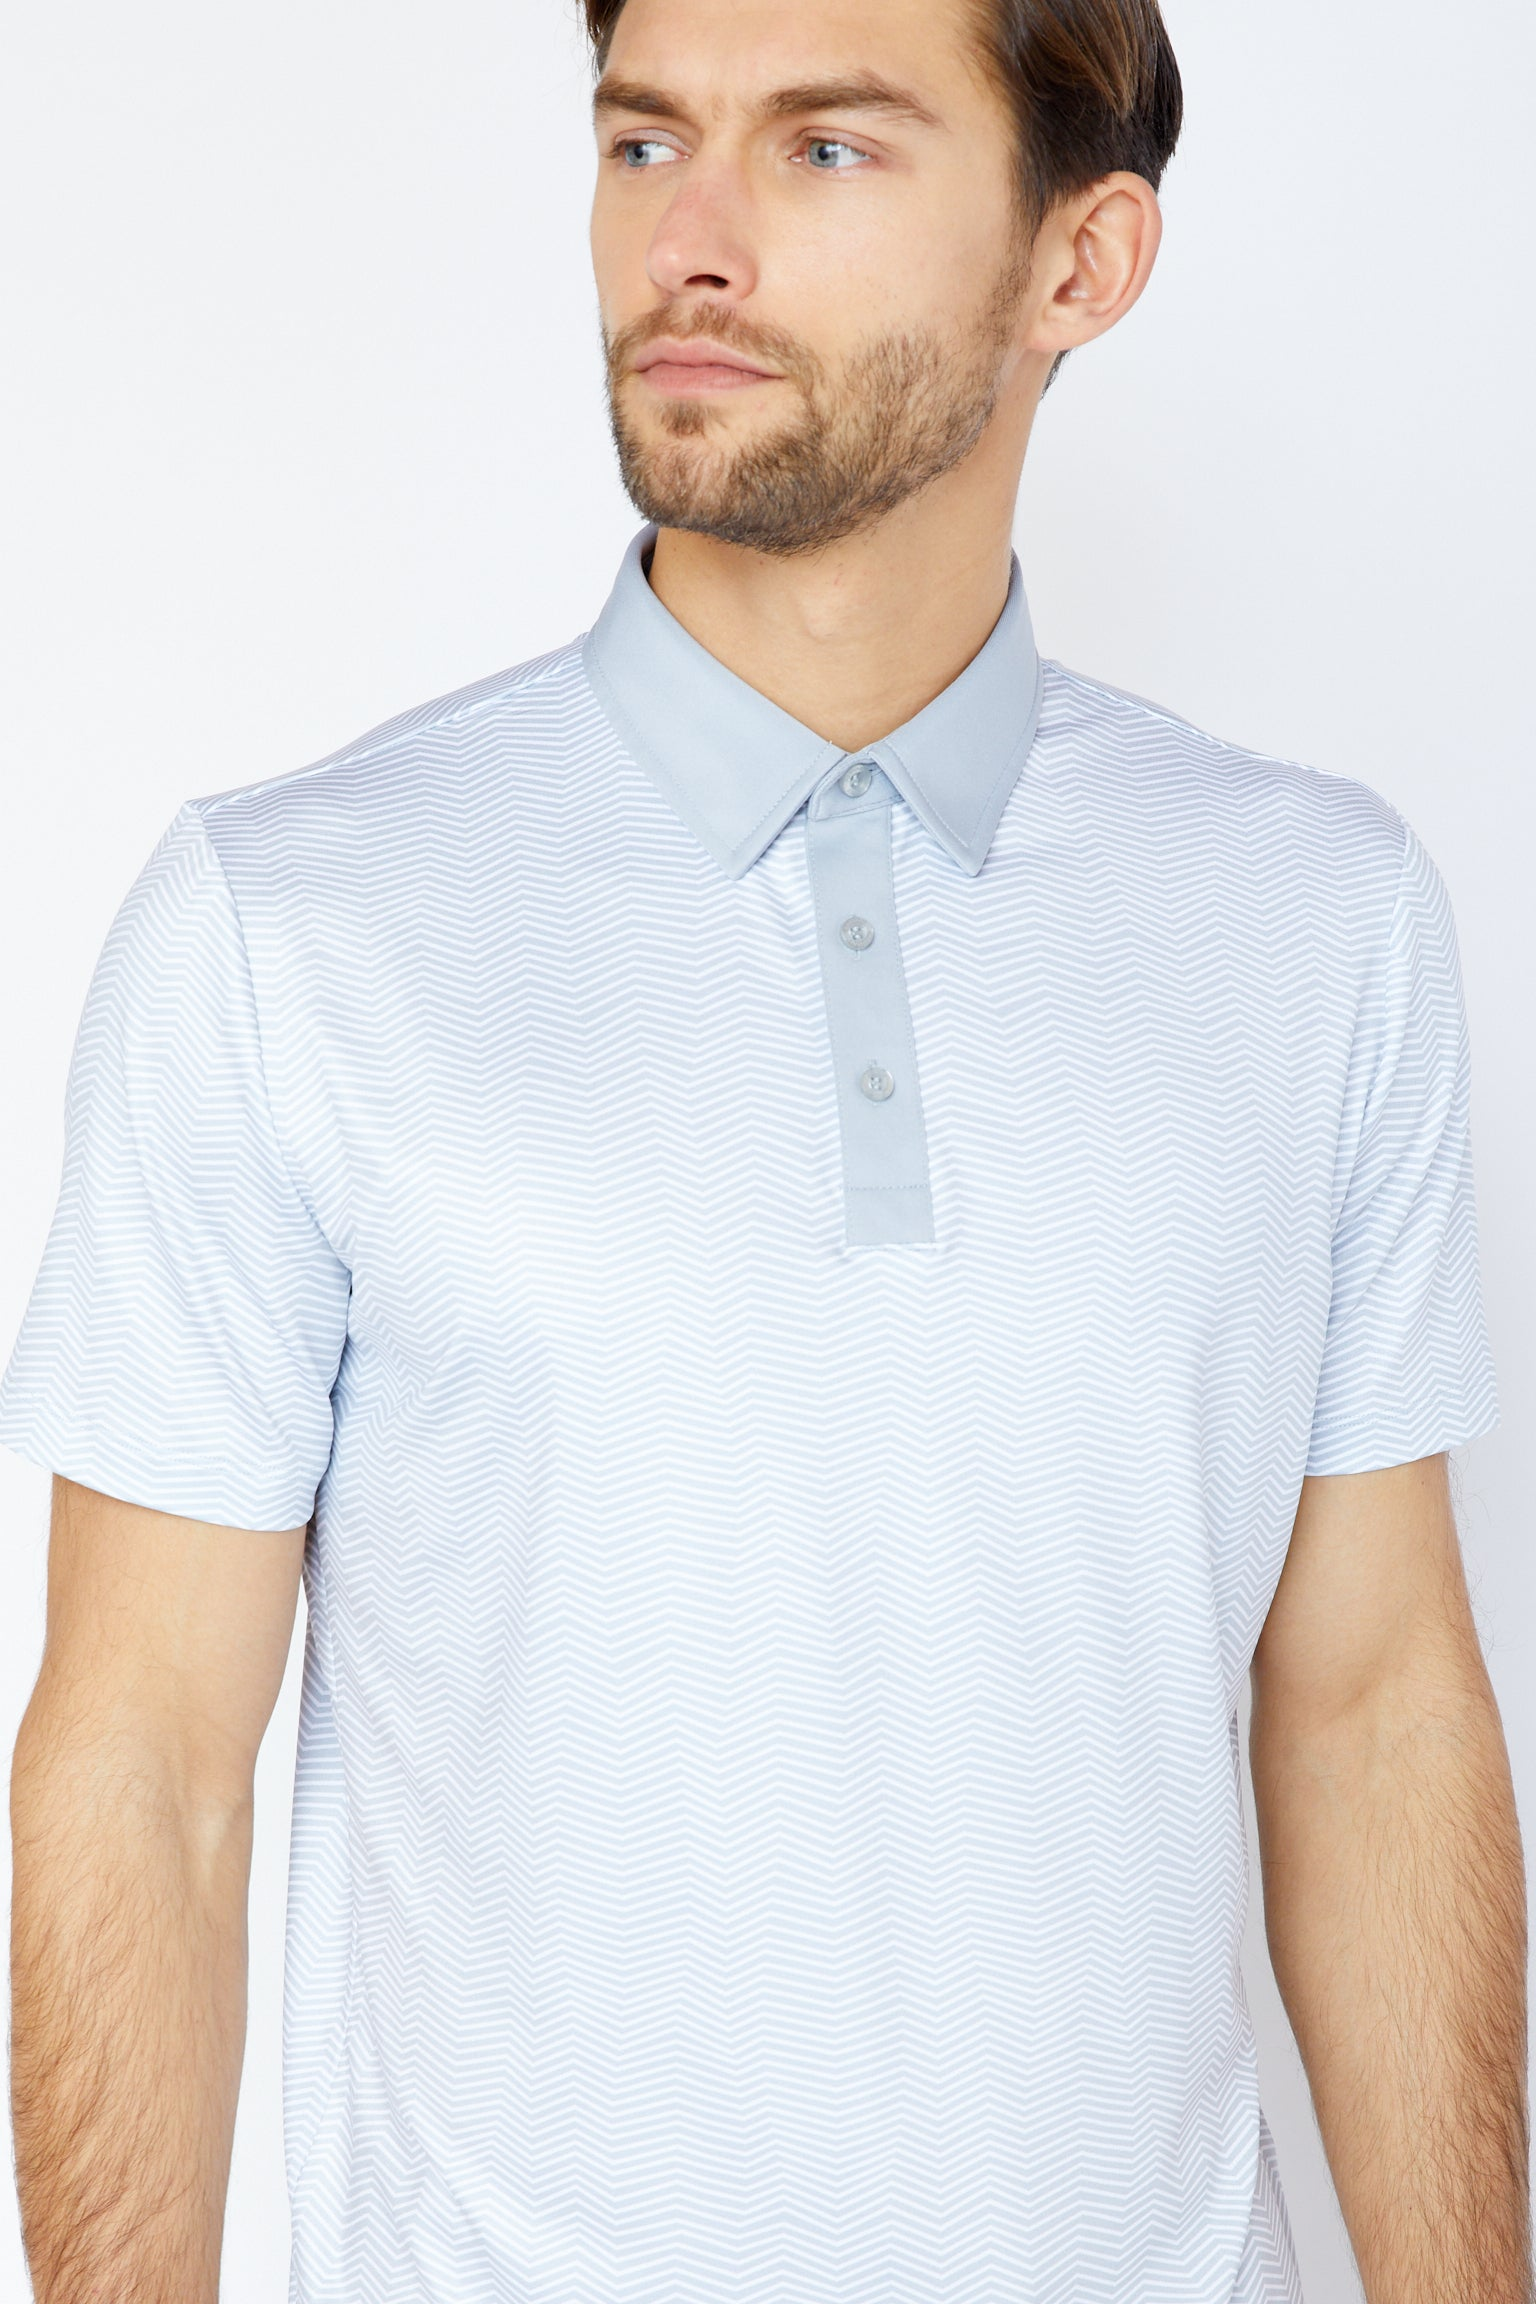 Isola Polo in Cool Grey